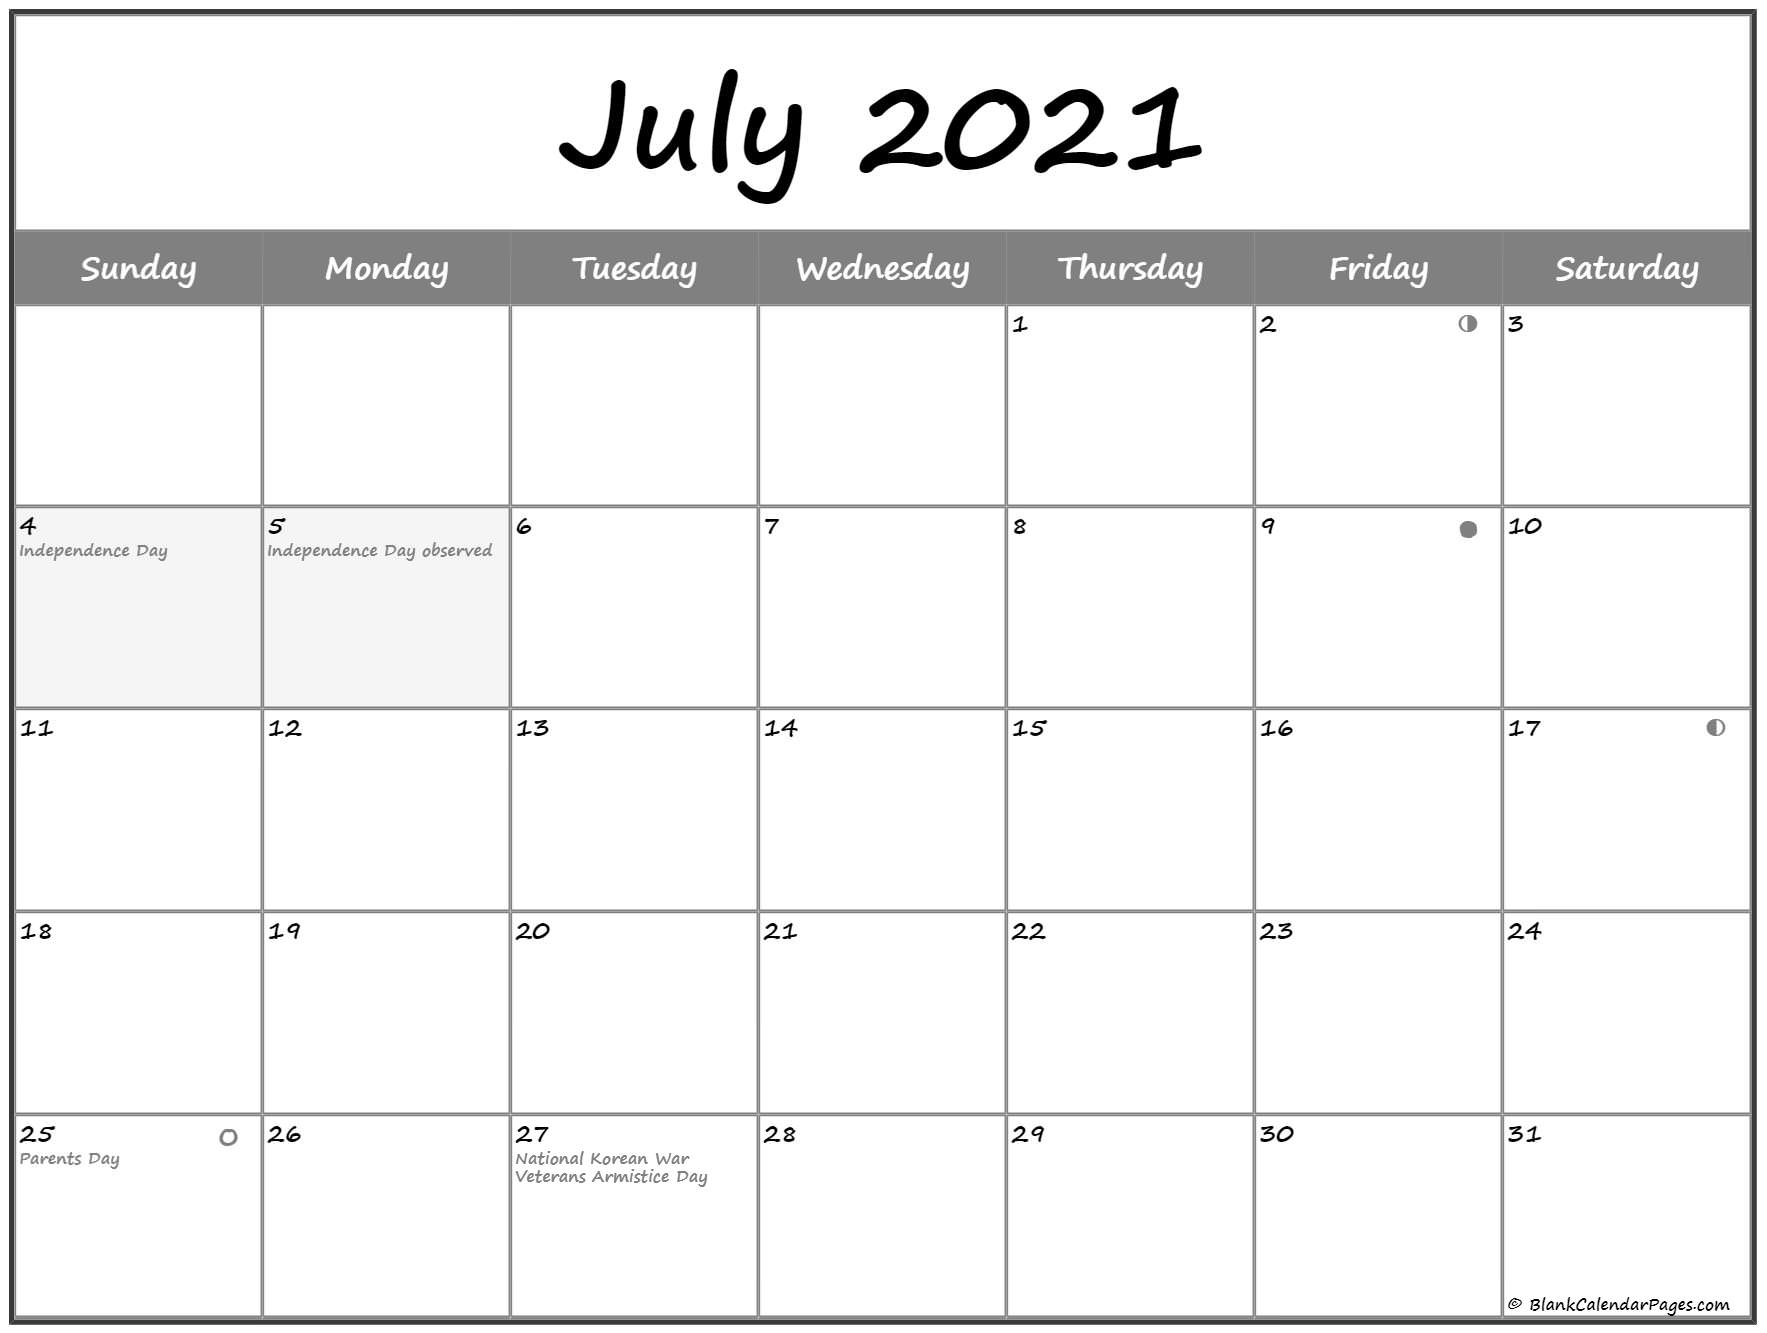 July 2021 Lunar Calendar | Moon Phase Calendar Throughout Moon Phase Deer Hunting Chart 2021